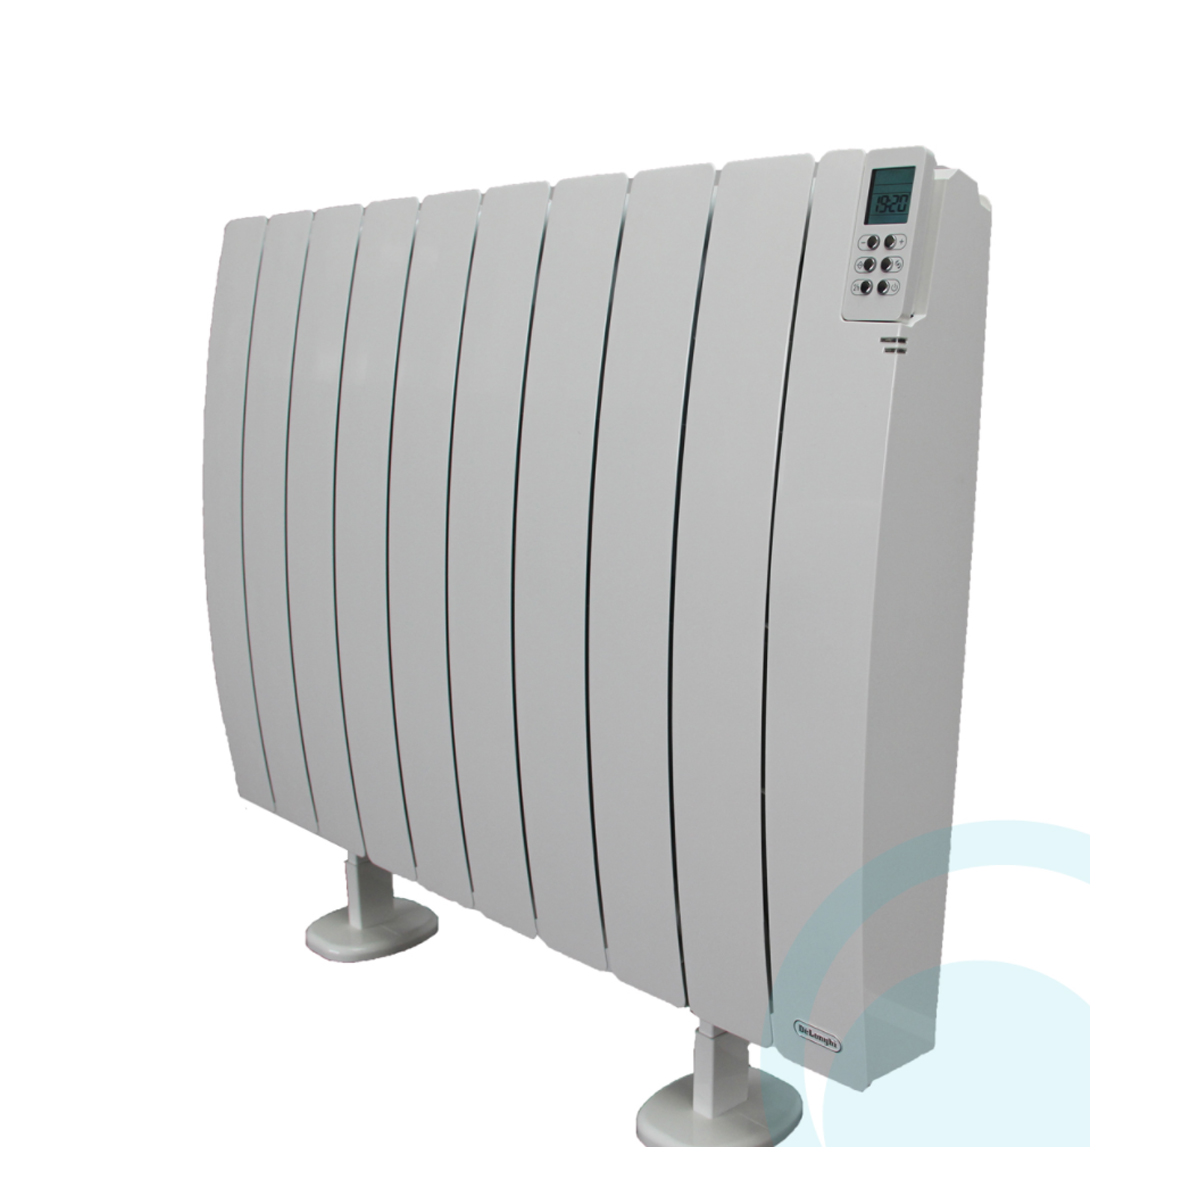 Delonghi Marco MARCO1500WH Electric Radiator System